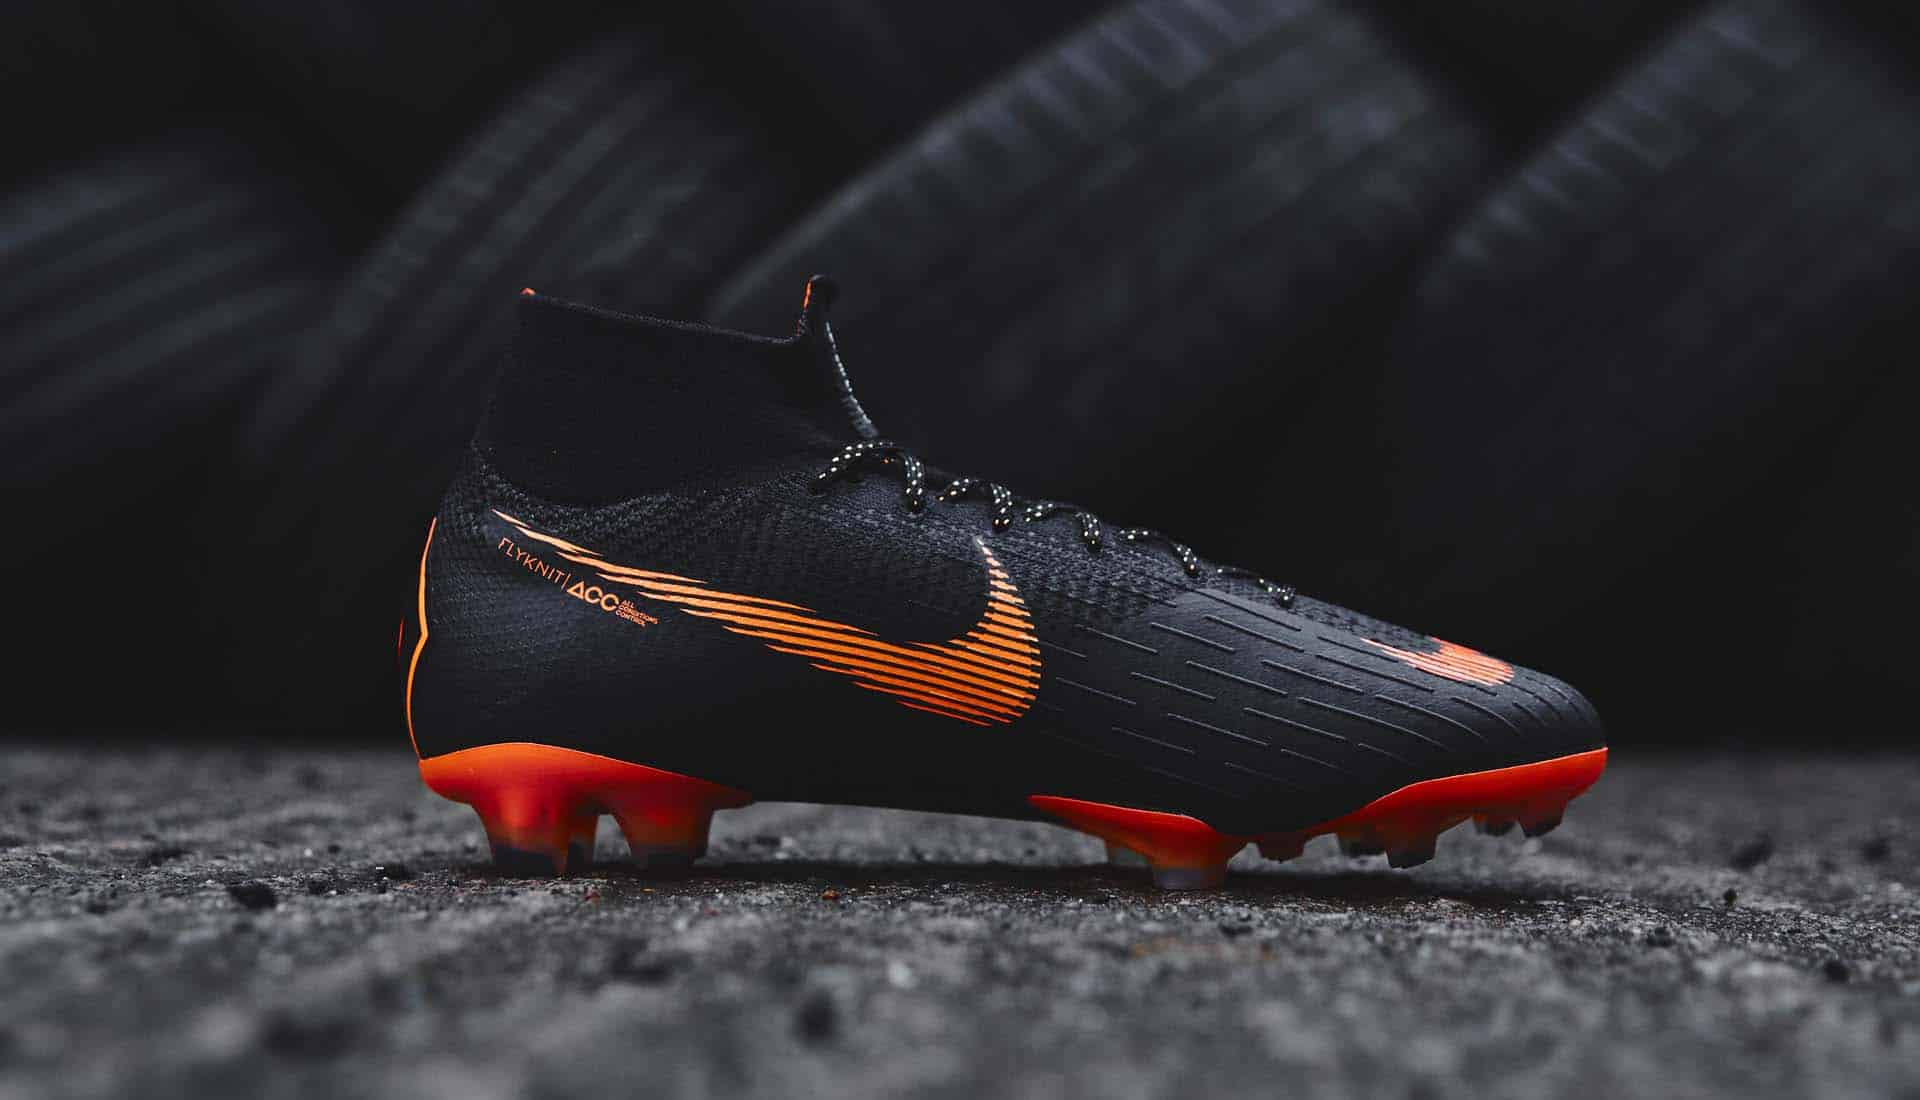 chaussures-football-Nike-Mercurial-Superfly-360-Noir-Orange-img1